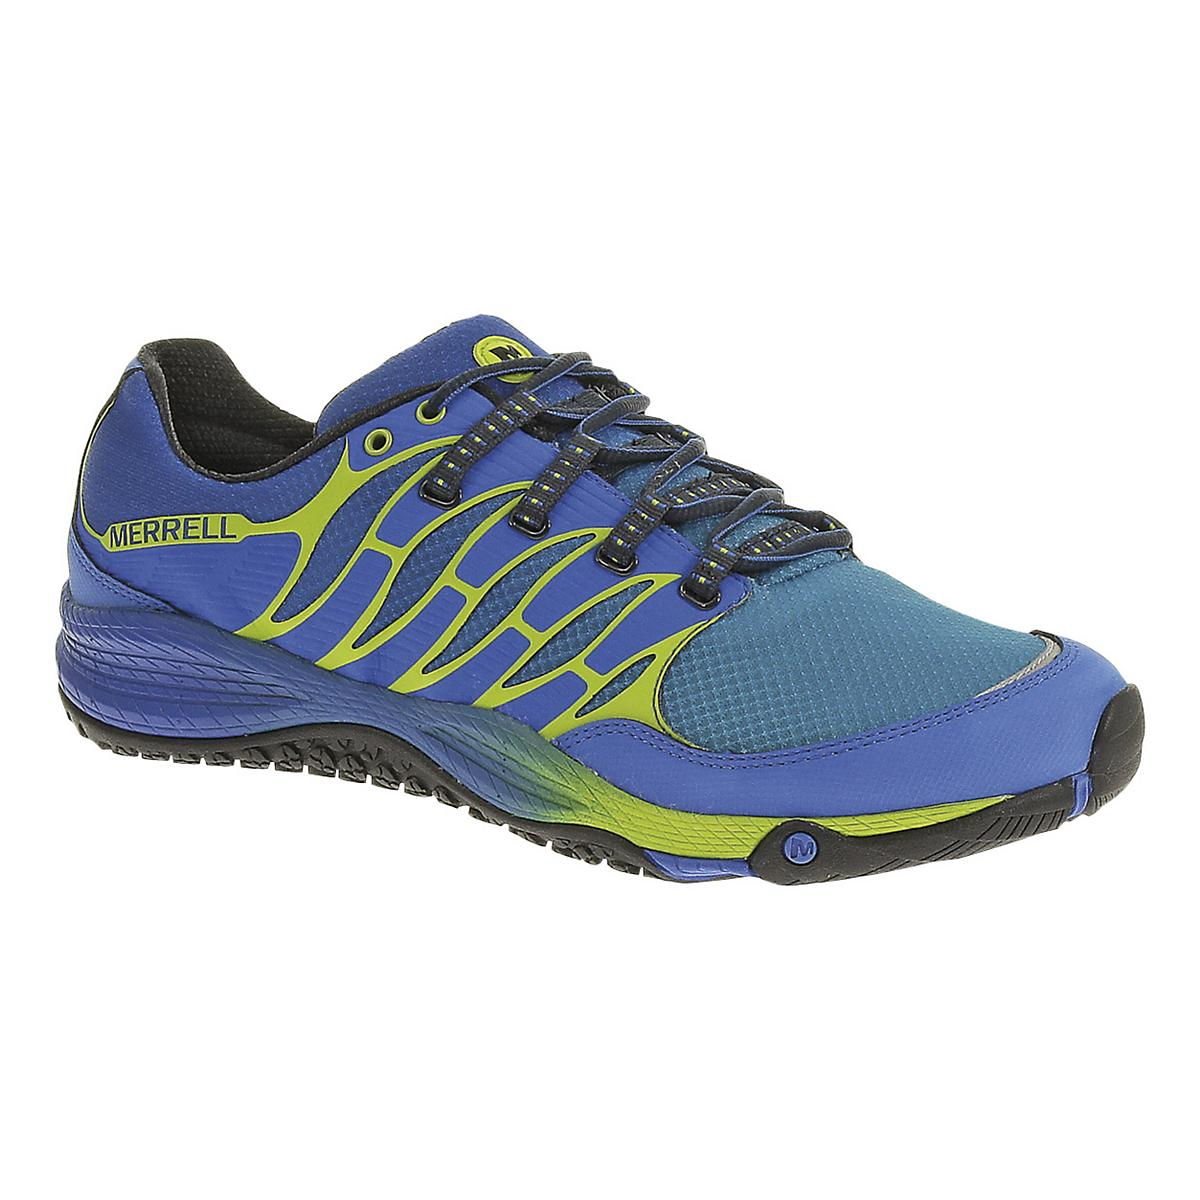 Merrell Allout Fuse Mens Running Shoes